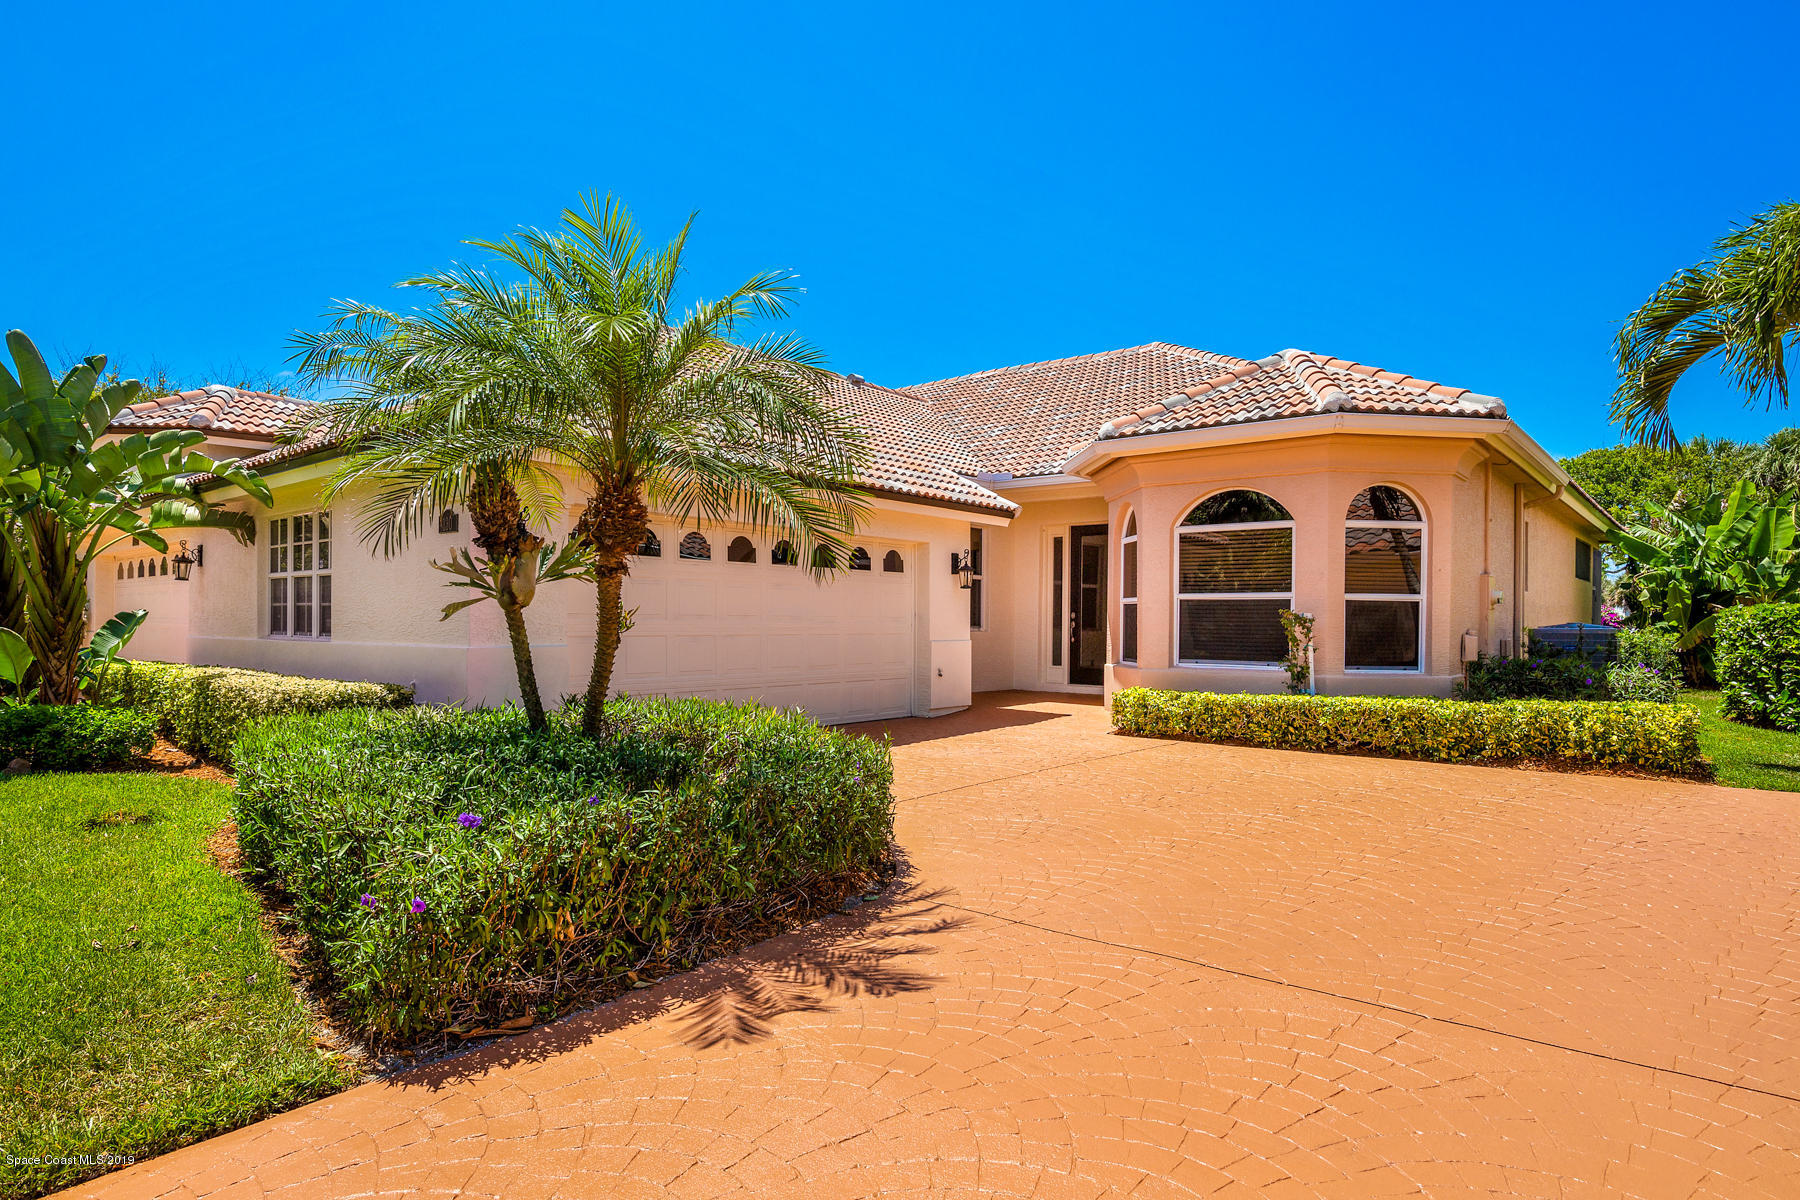 Single Family Homes for Sale at 130 Whaler Melbourne Beach, Florida 32951 United States